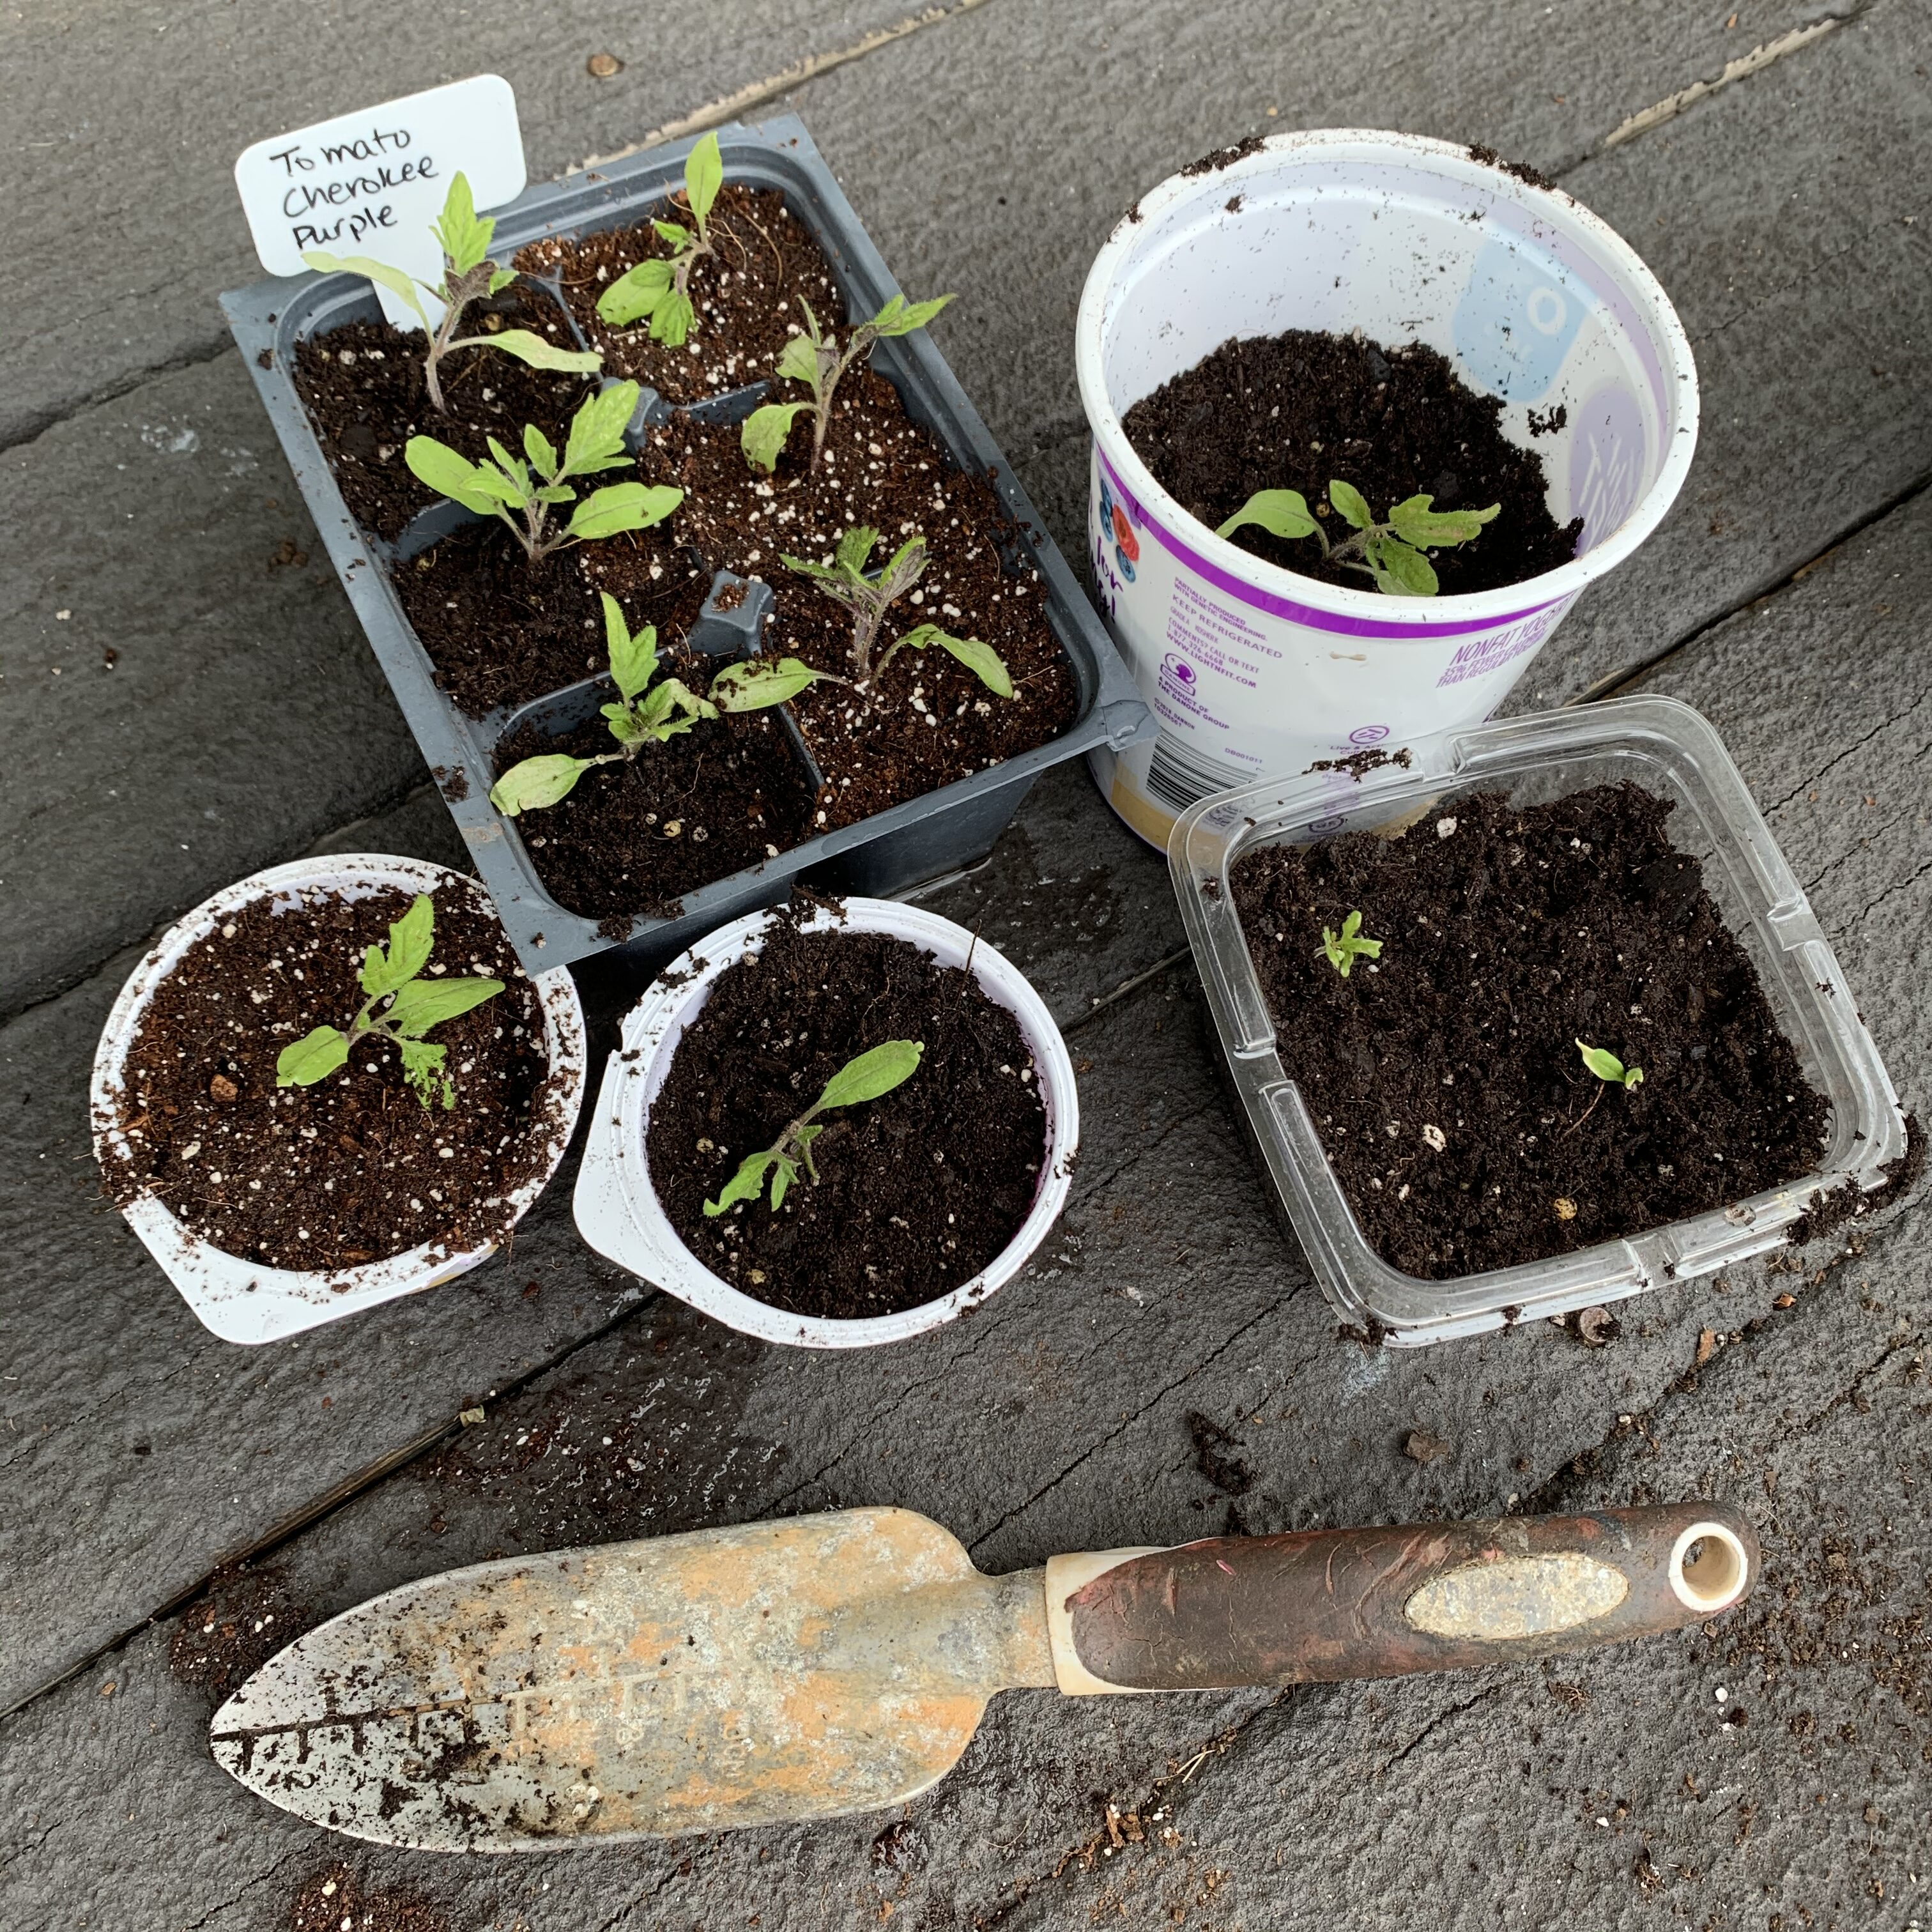 05F5679A 19B0 4262 8122 C3A00AAF080D Comparing Burpee Organic Seed Starting Mix vs Miracle Gro Moisture Control Potting Mix for transplanted tomato seedlings